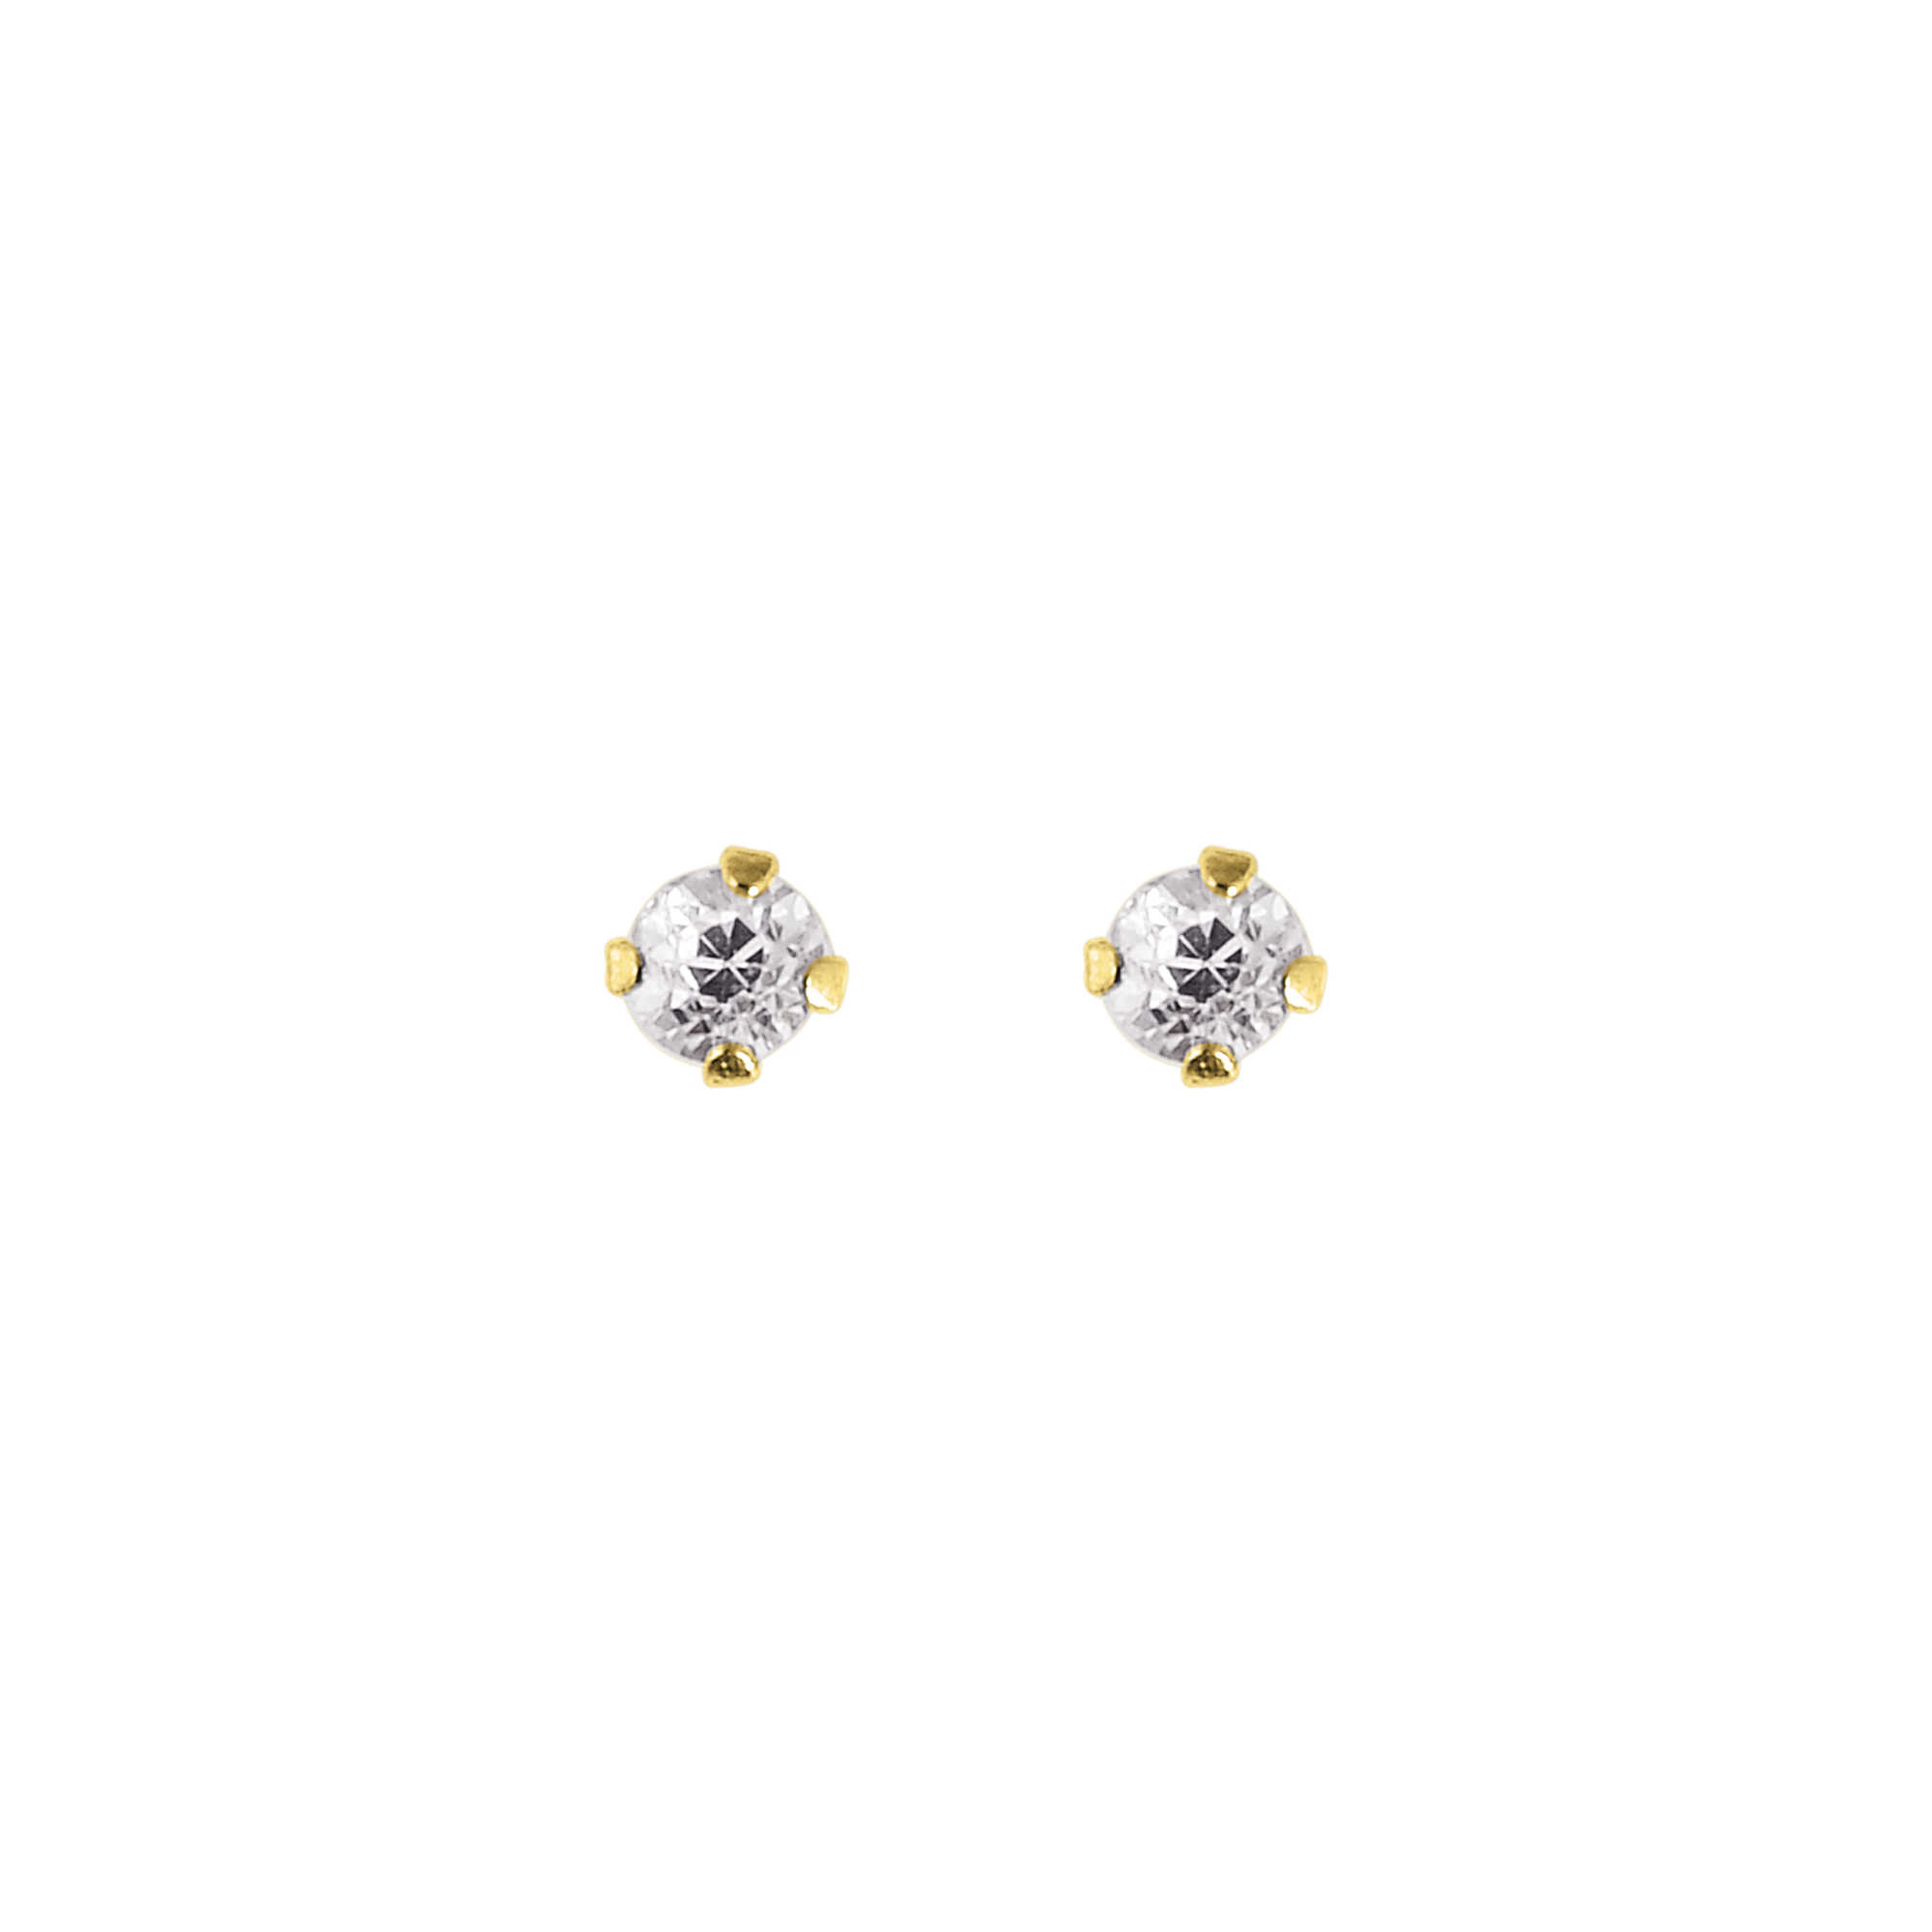 14K Yellow Gold Shiny 2.0mm Round Faceted White Cubic Zirconia Stud Earring